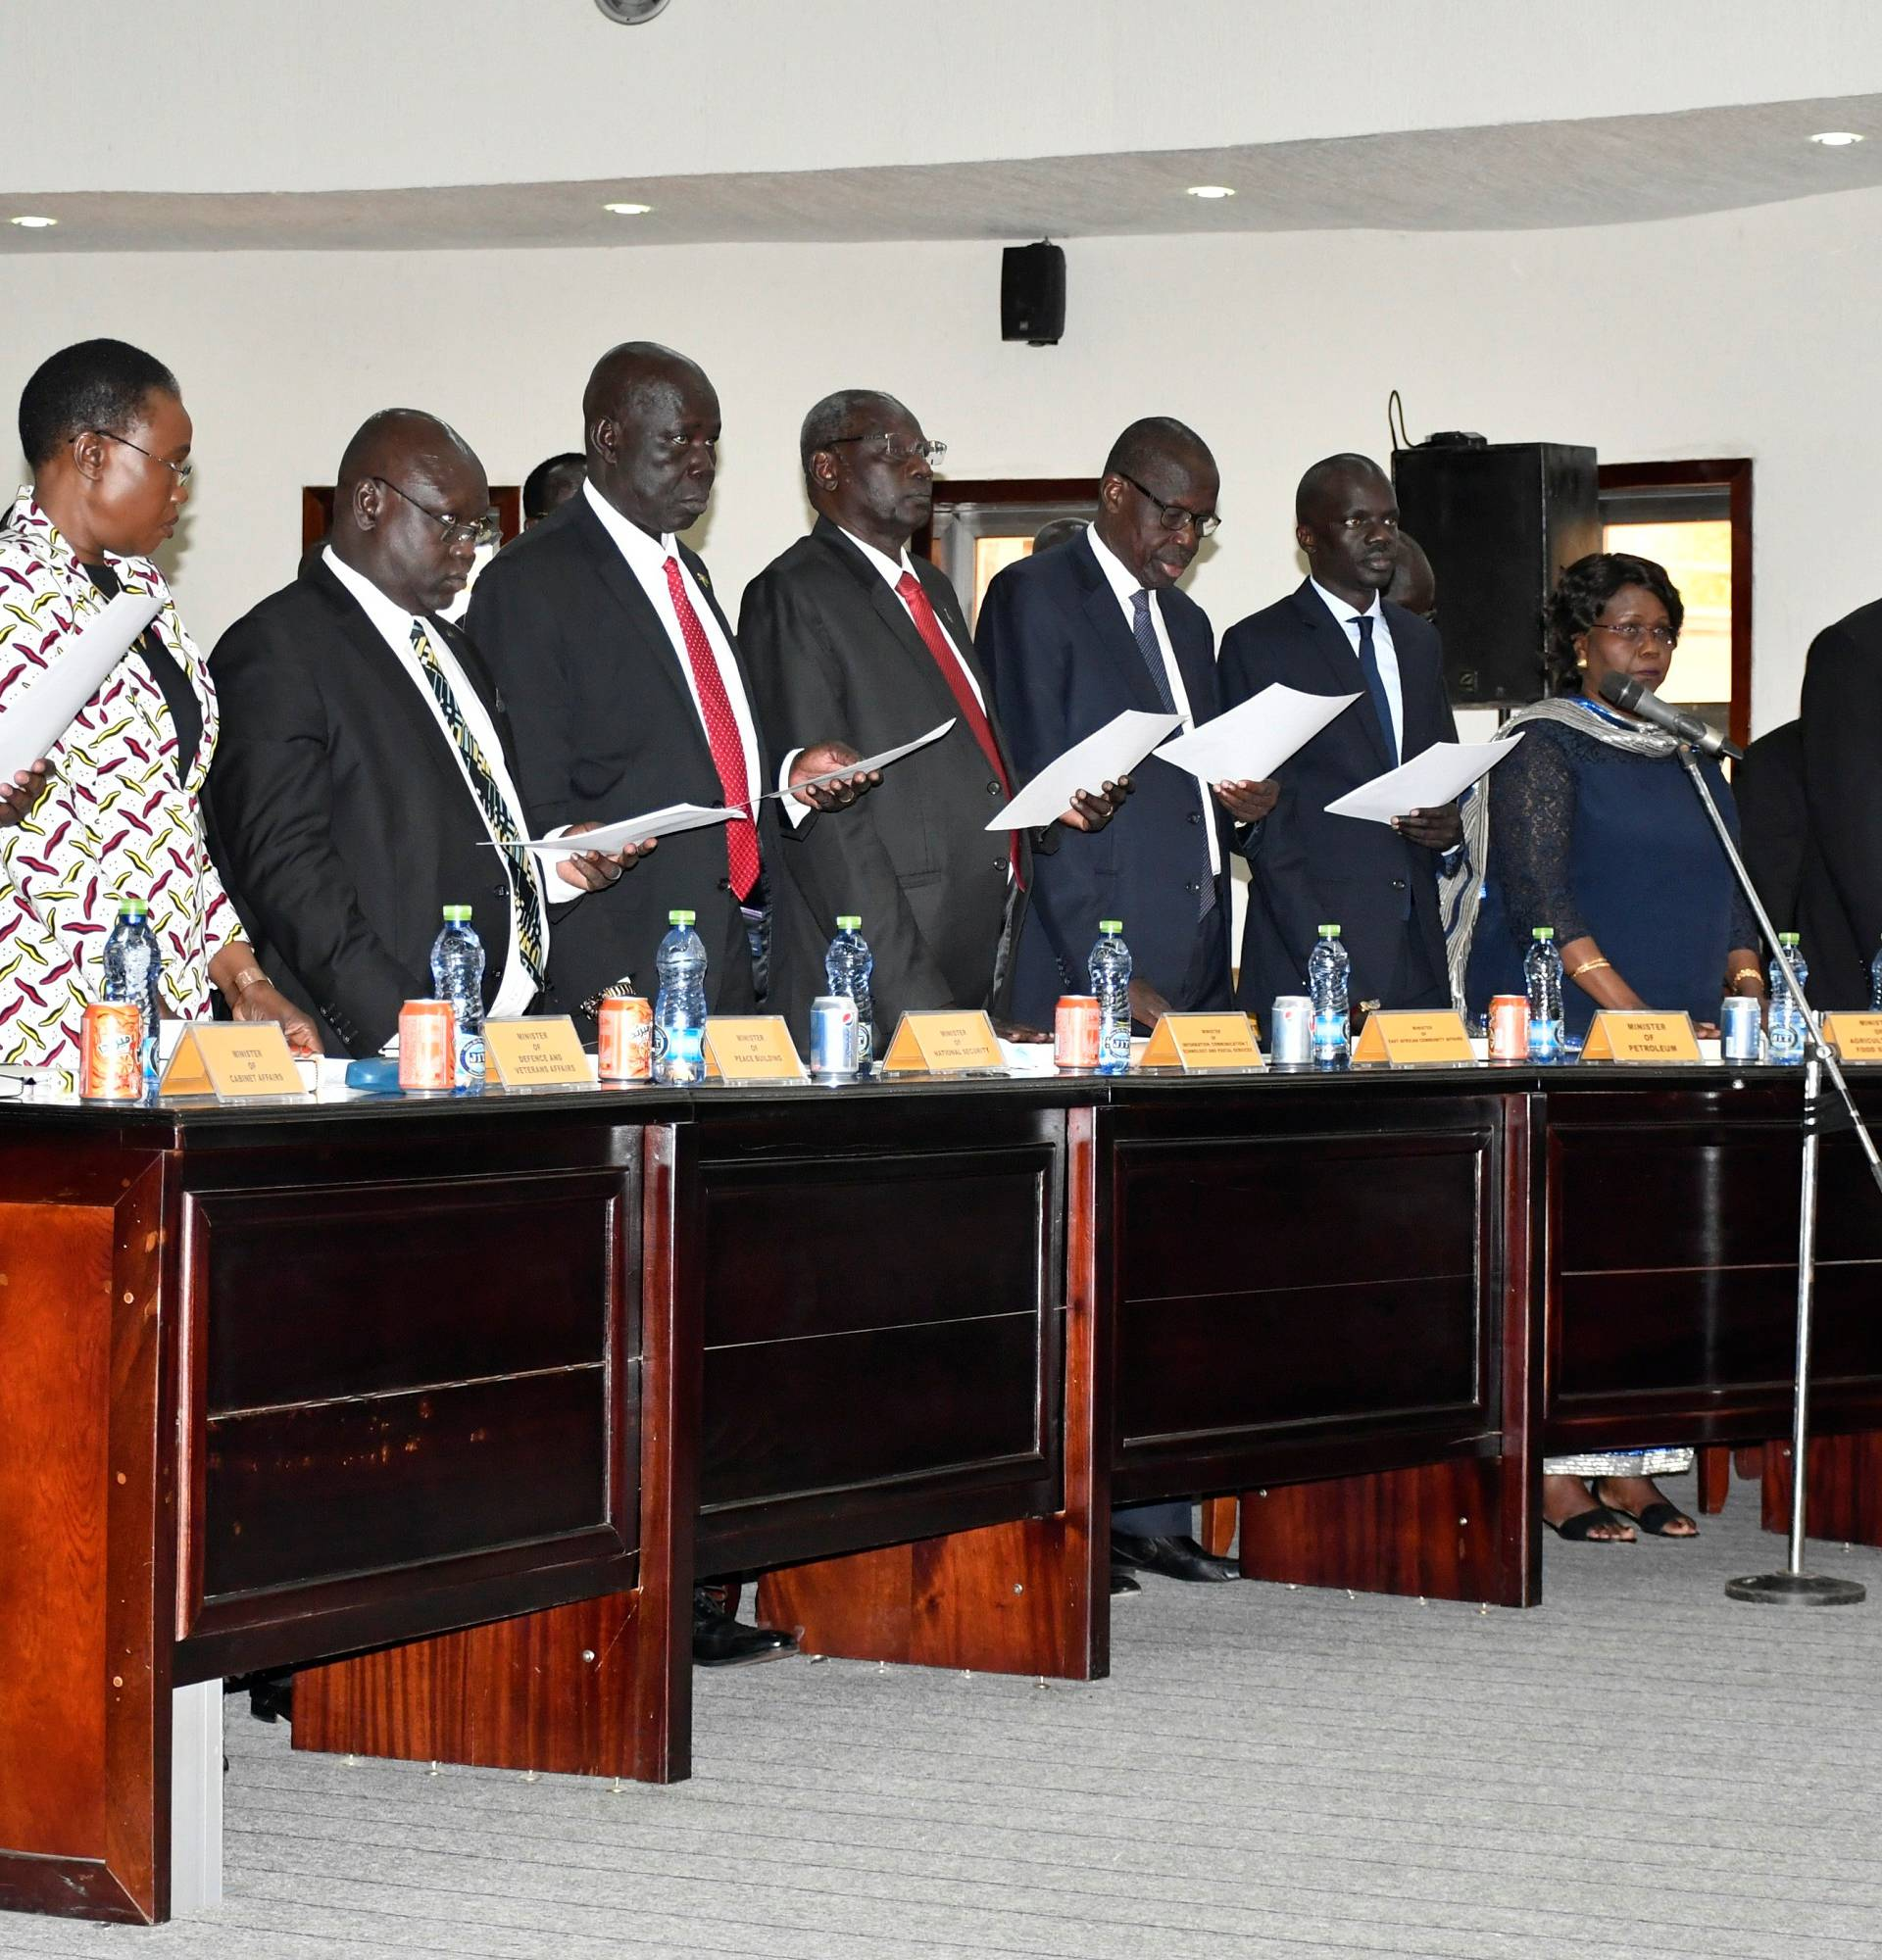 South Sudan's newly appointed Ministers attend their swearing-in ceremony in Juba